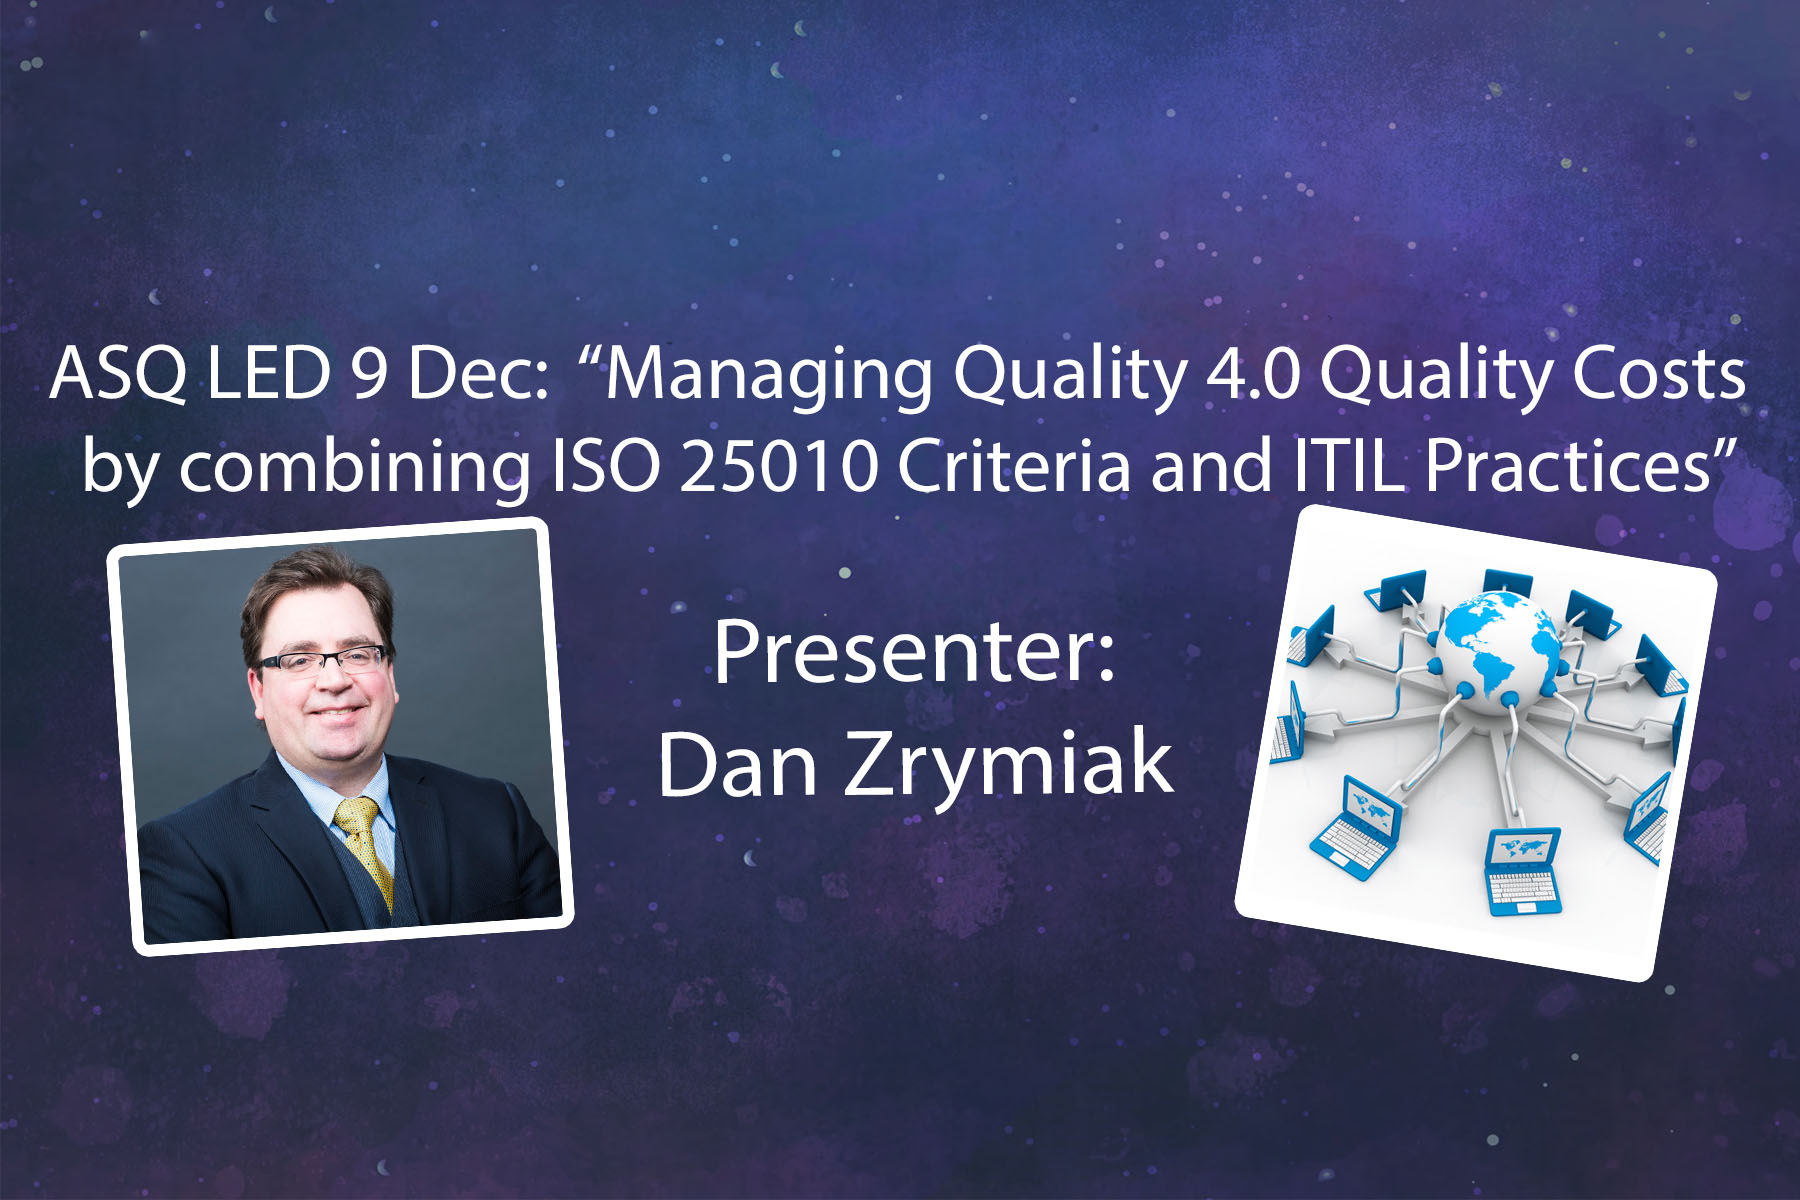 """ASQ LED 9 December 2020 Webinar - """"Managing Quality 4.0 Quality Costs by combining ISO 25010 Criteria and ITIL Practices"""" 2129"""